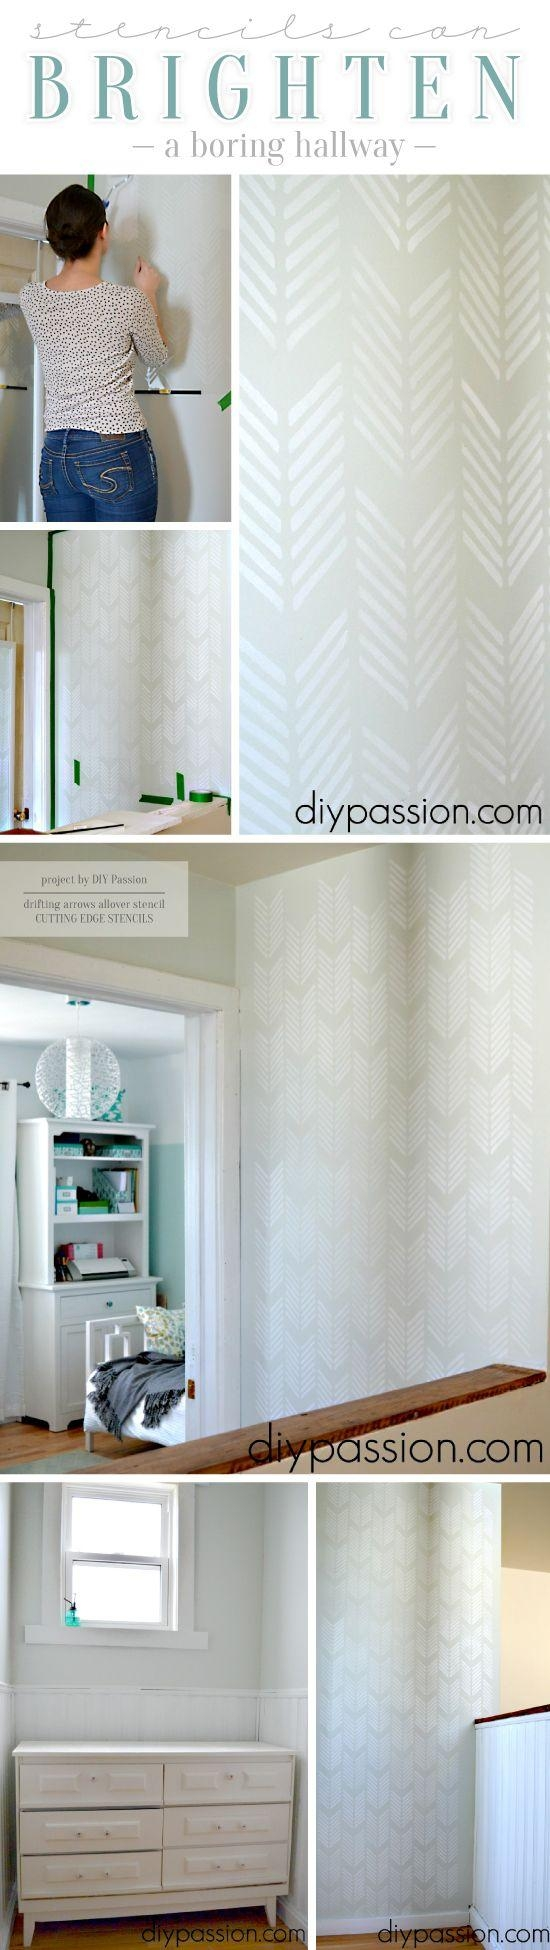 Best 25+ Diy Stenciled Walls Ideas On Pinterest | Stencil Wall Art Within Space Stencils For Walls (View 11 of 20)